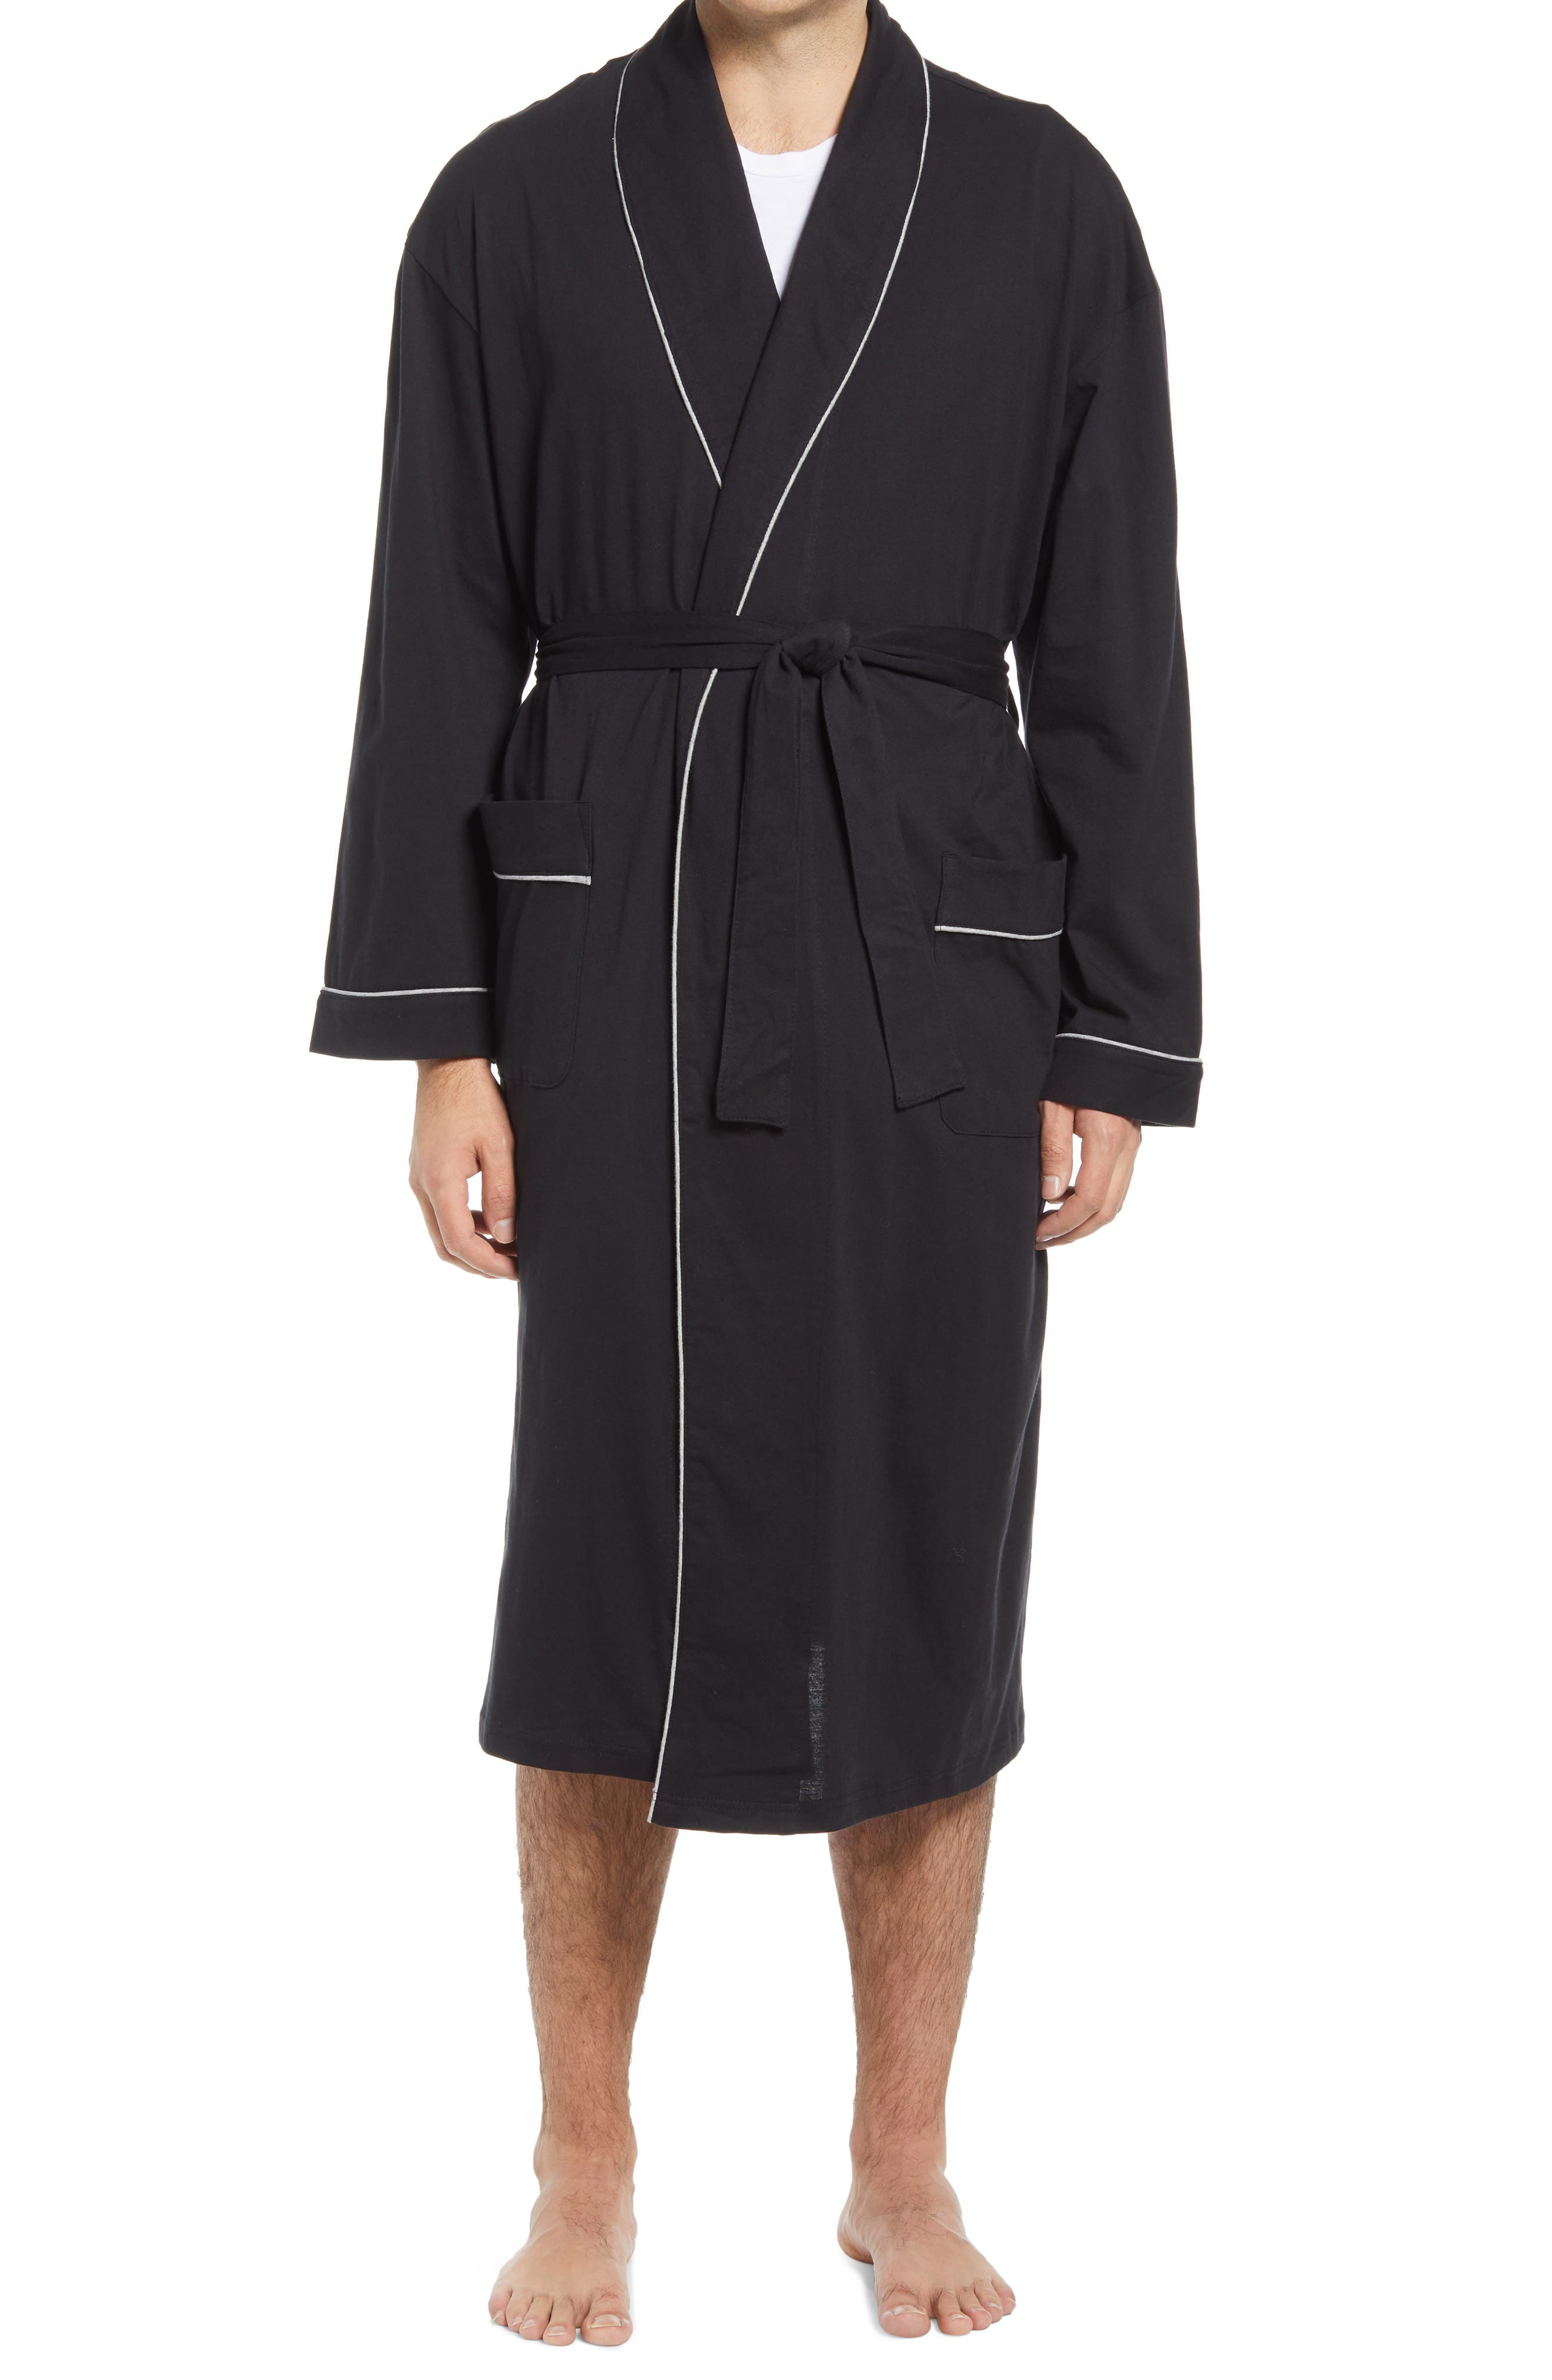 Now & Later Shawl Collar Robe